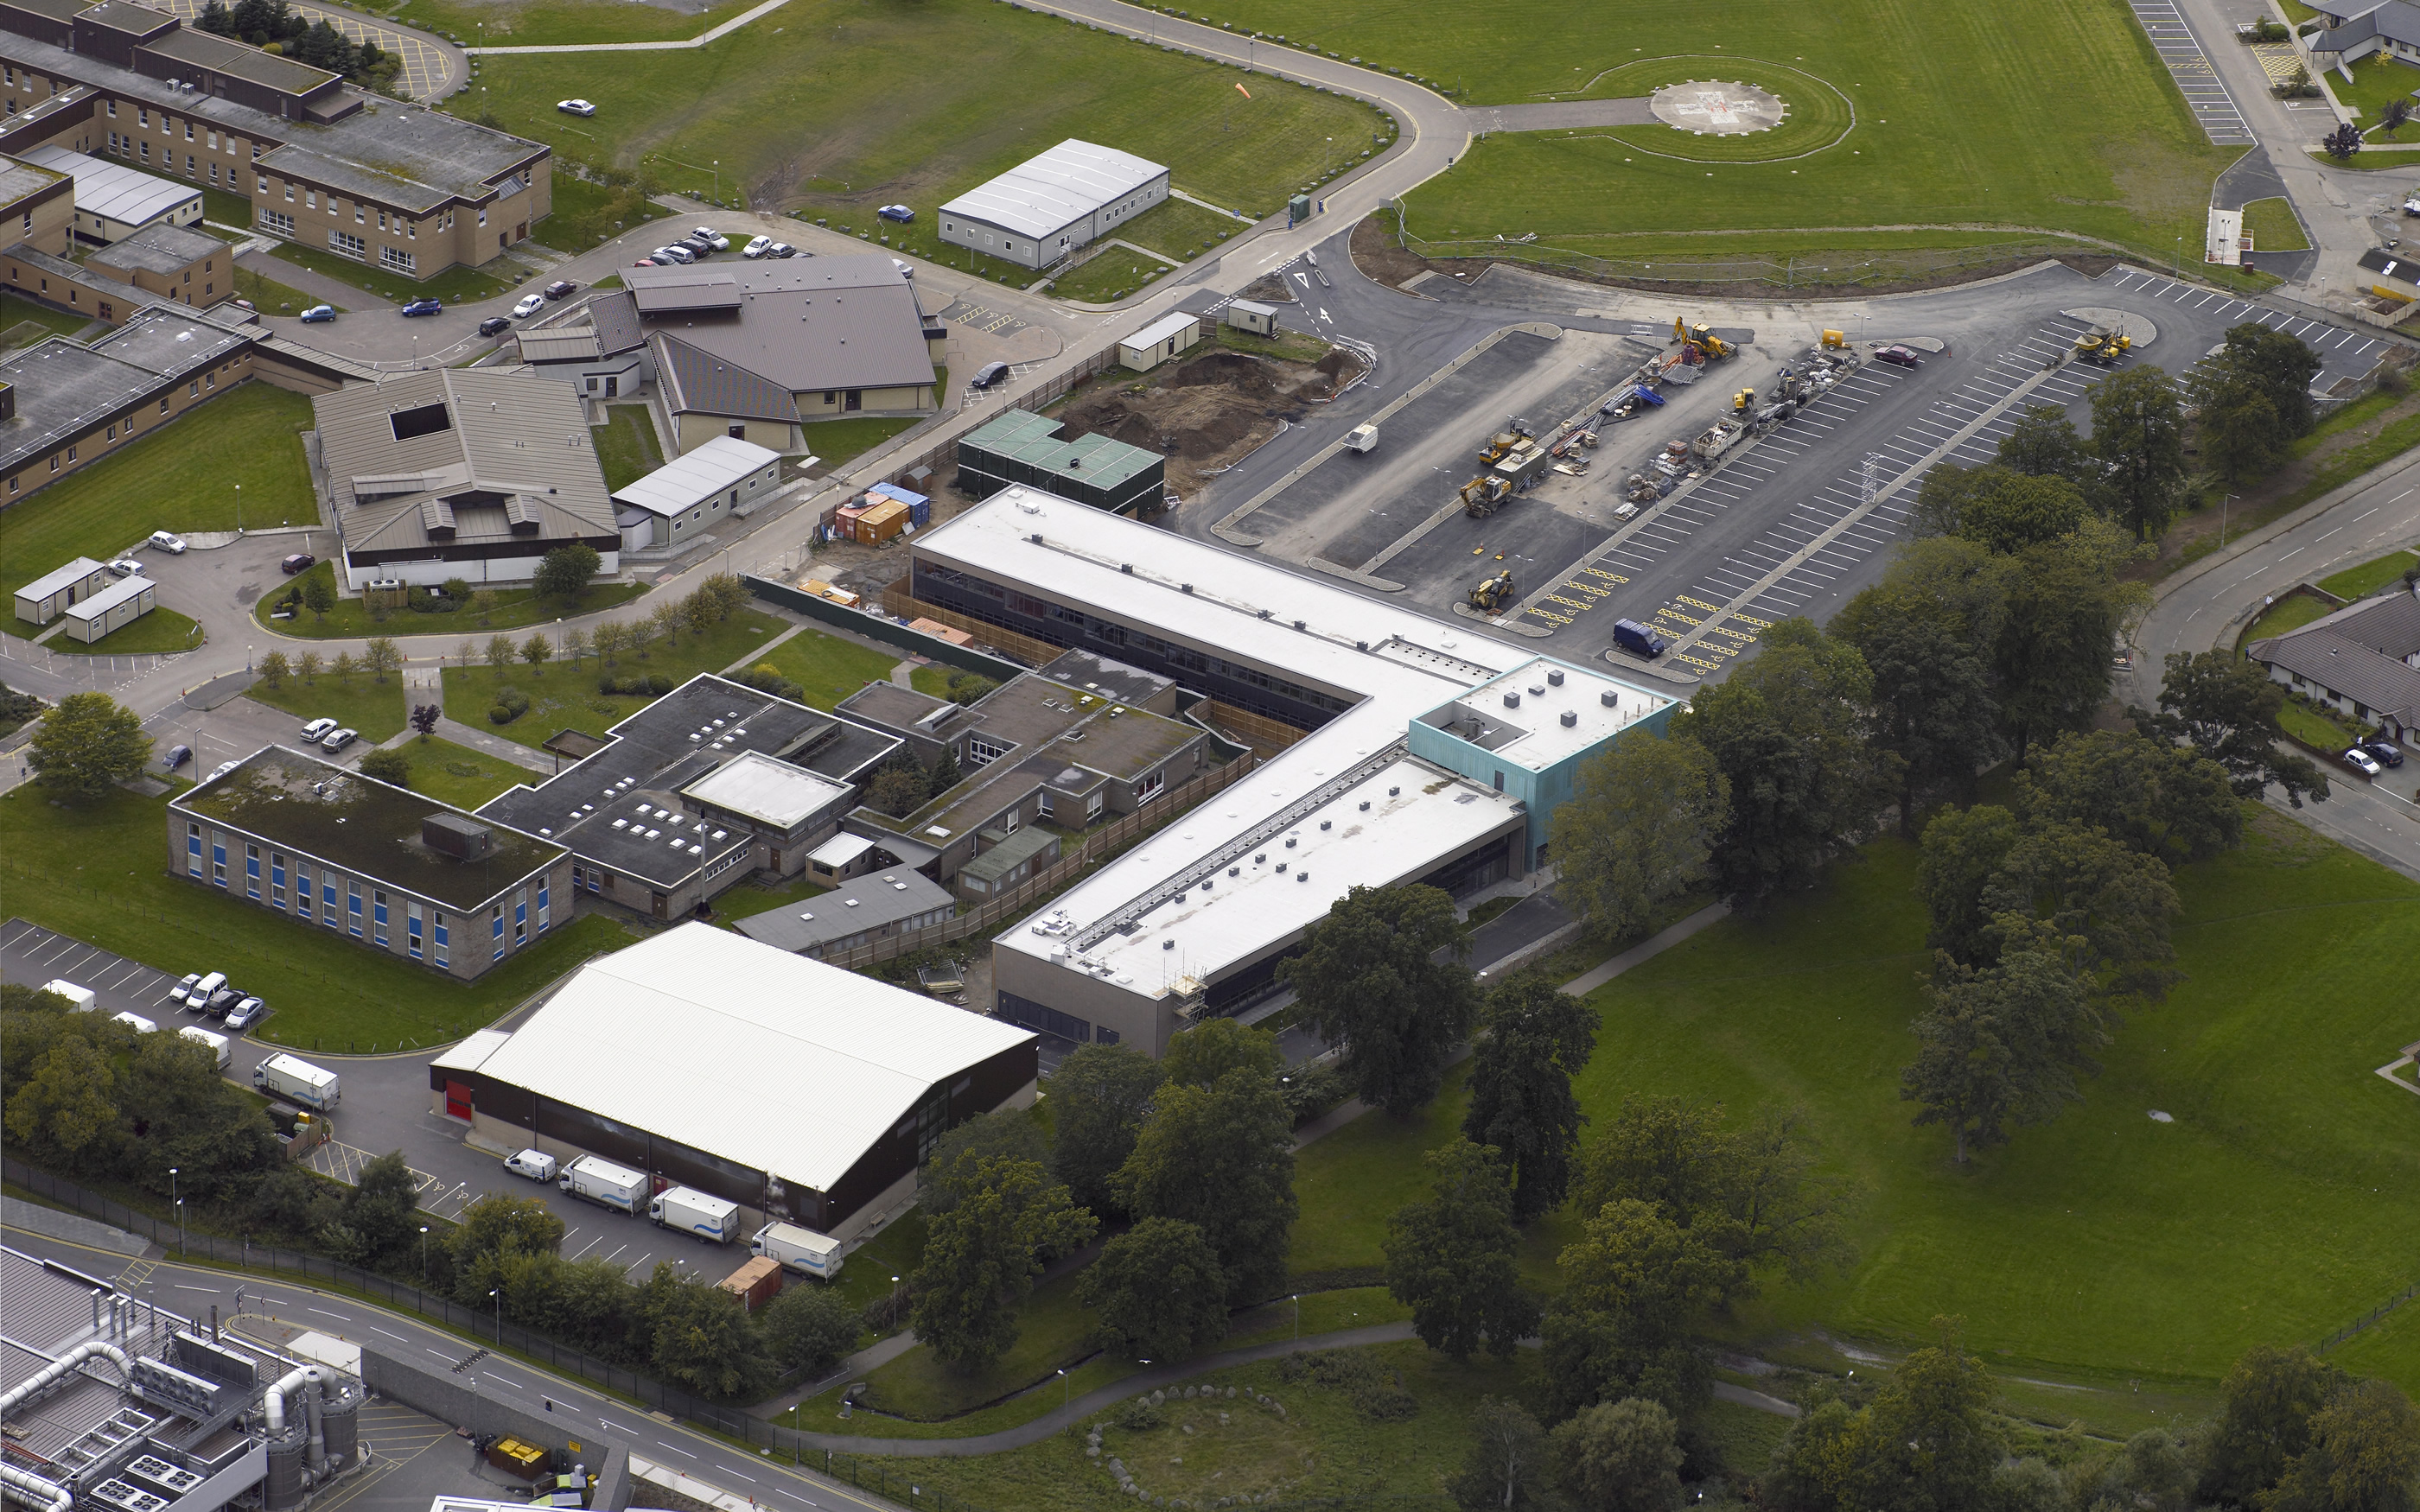 Centre for Health Science, Inverness - Aerial view